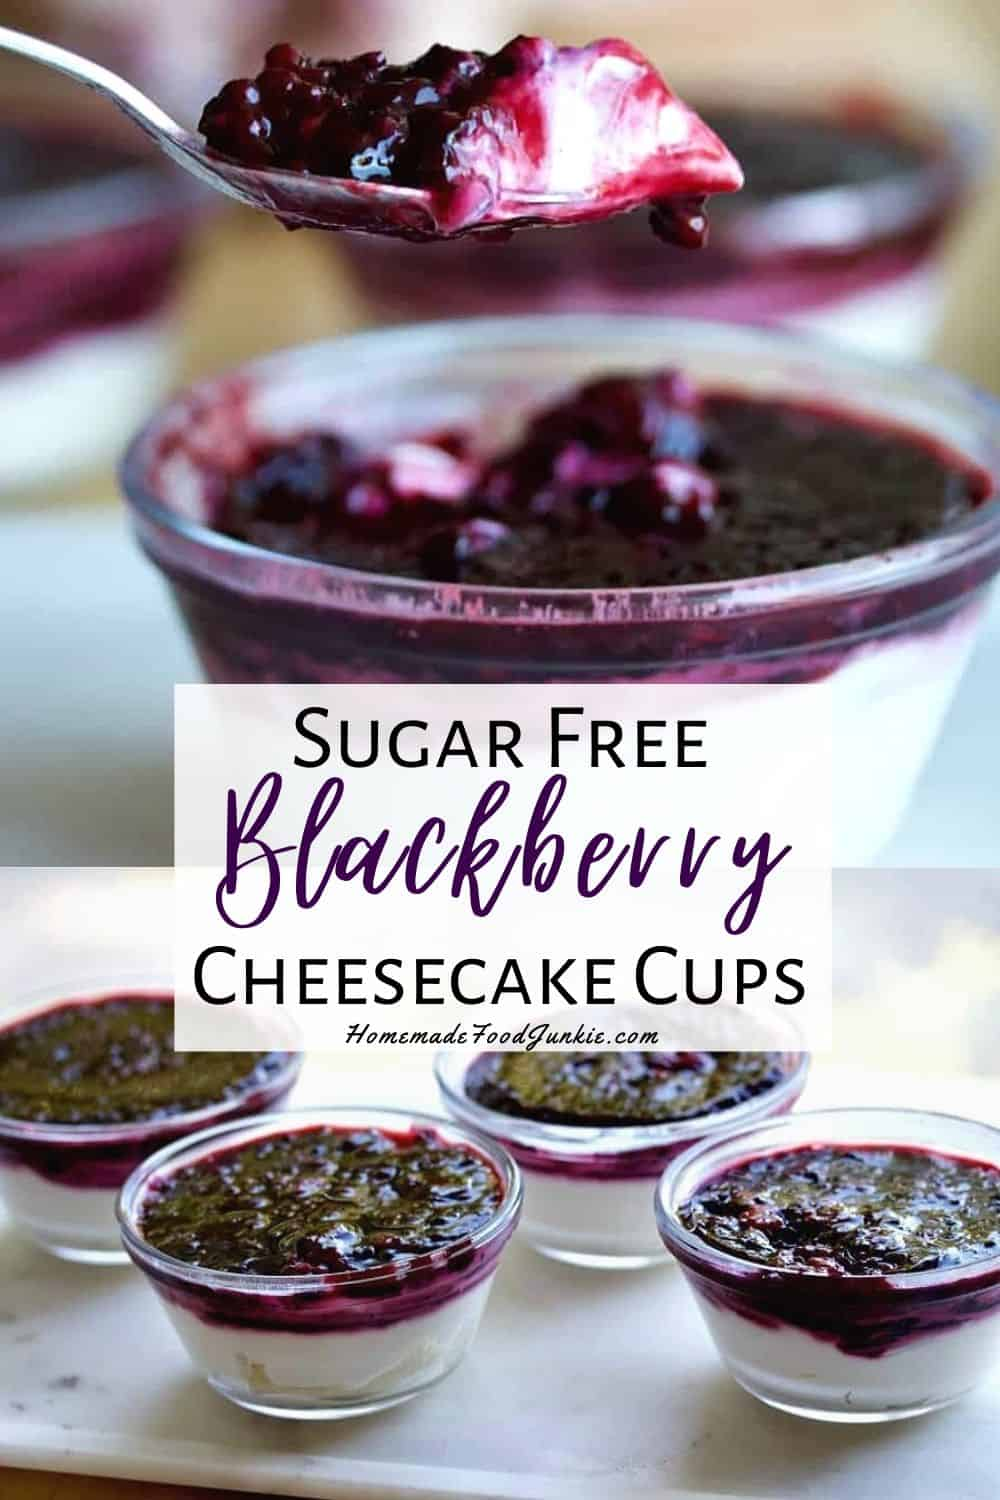 Sugar free blackberry cheesecake cups-pin image